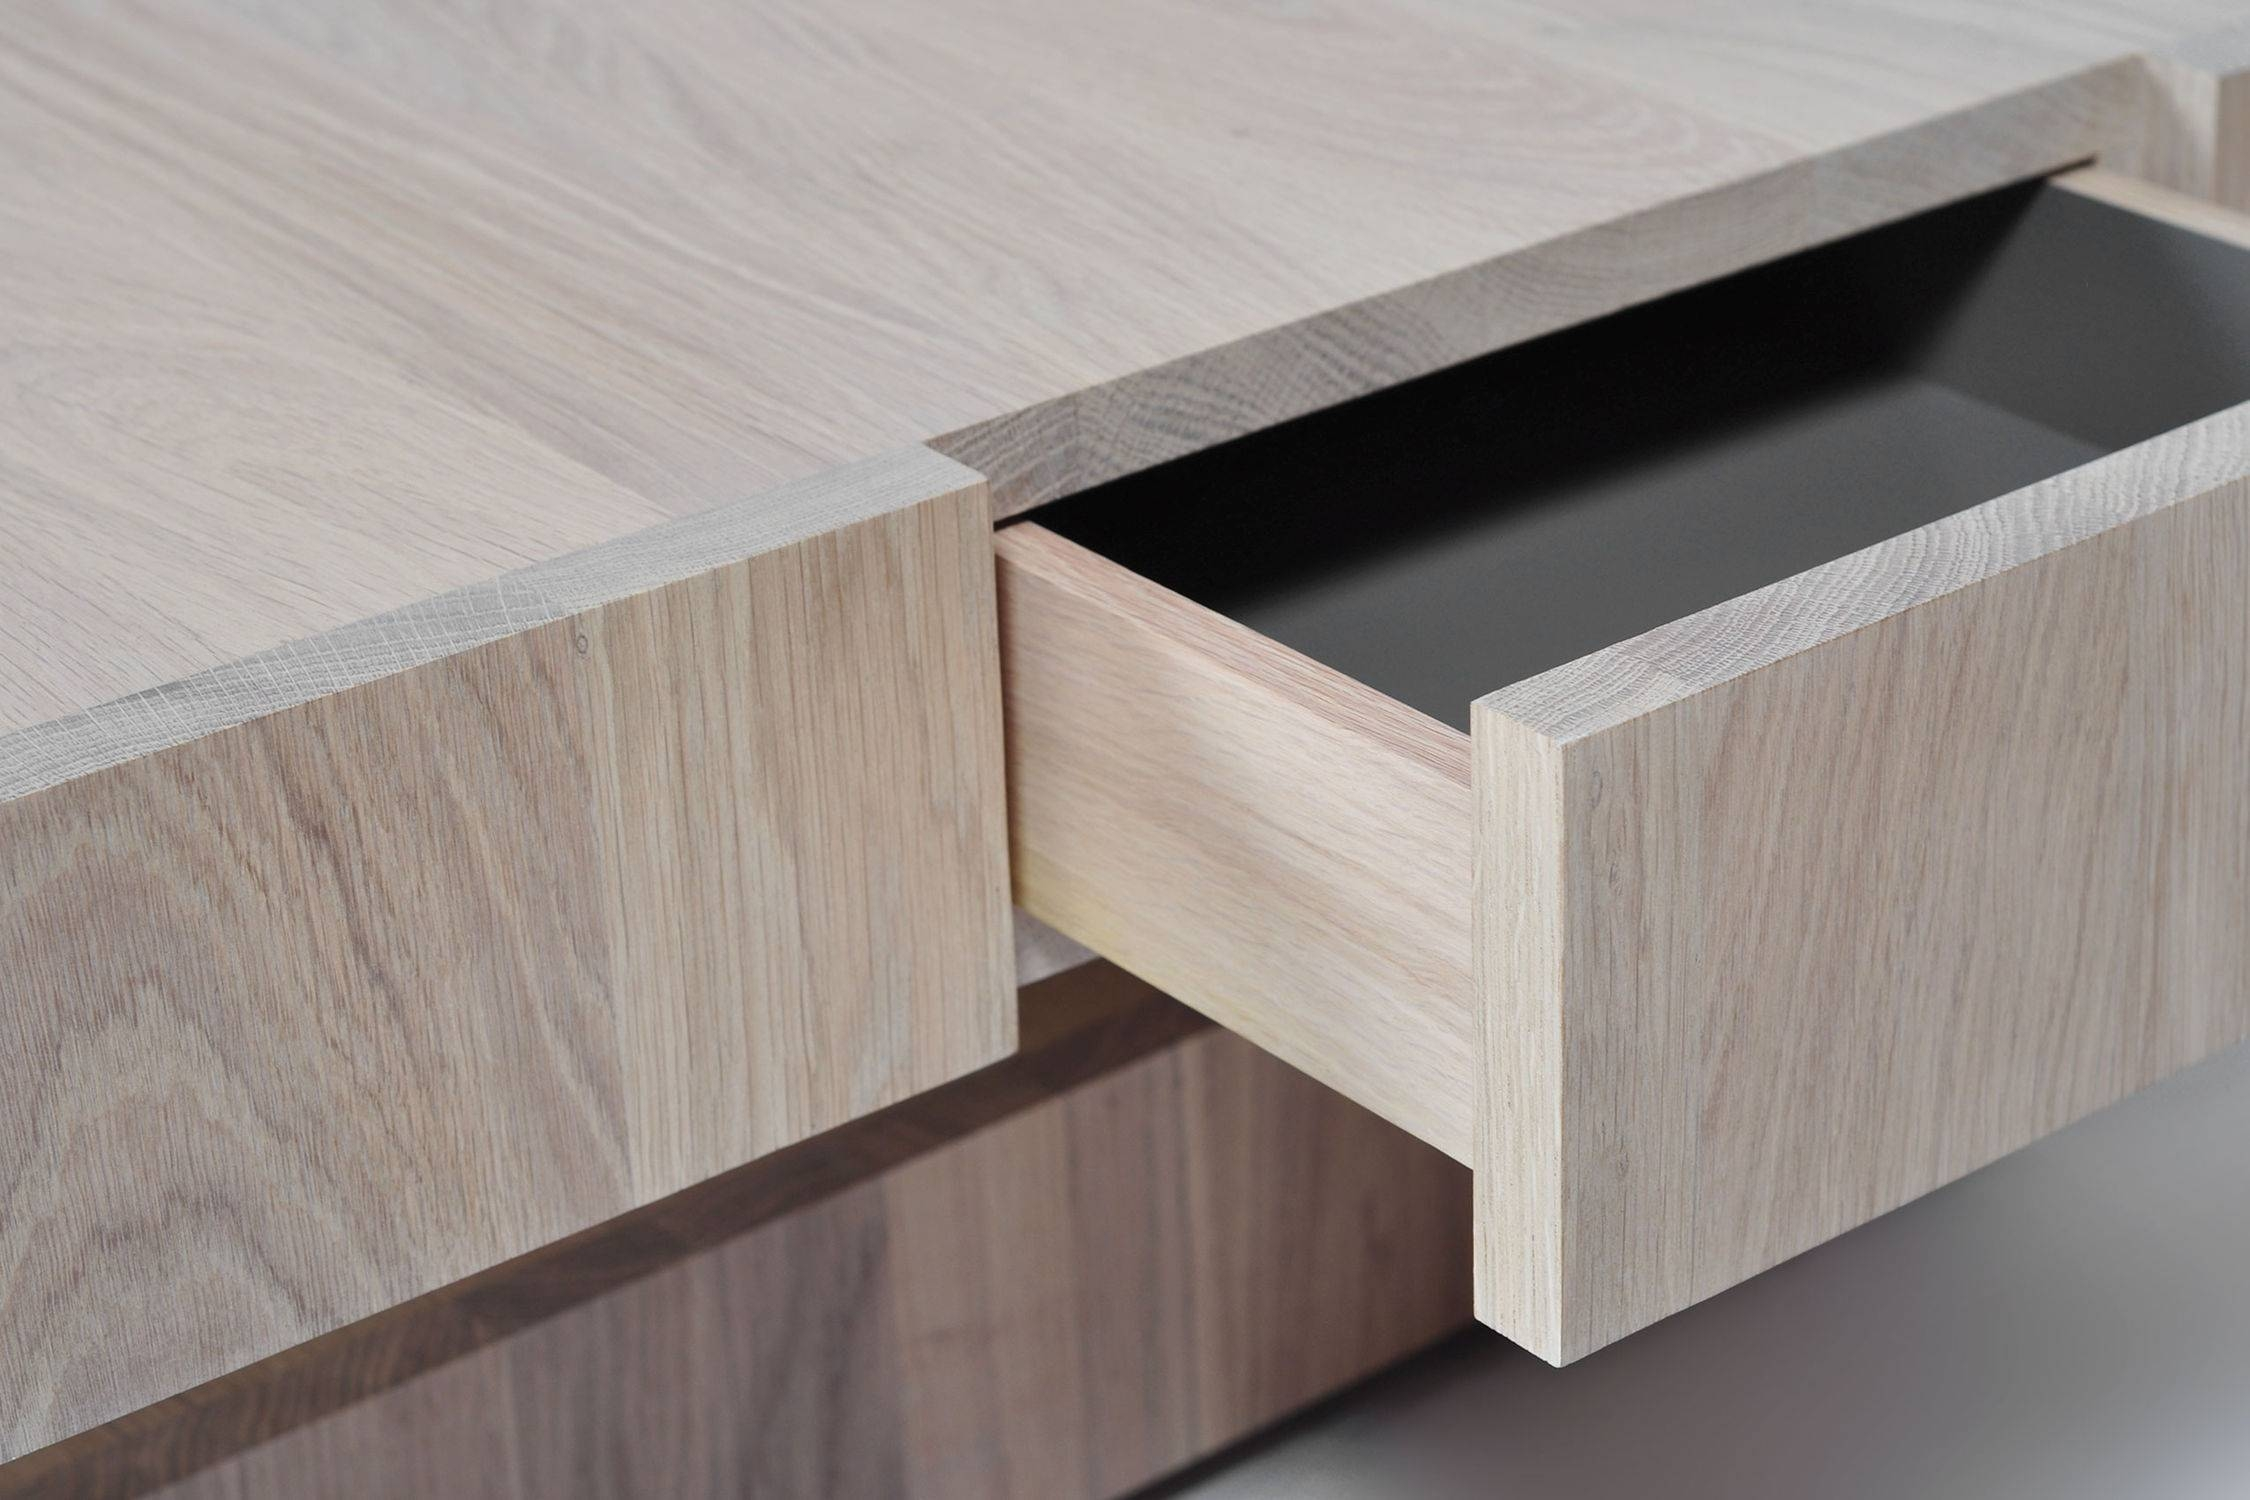 Contemporary Coffee Table / Oak / Square / With Storage With Regard To Square Storage Coffee Tables (View 15 of 30)